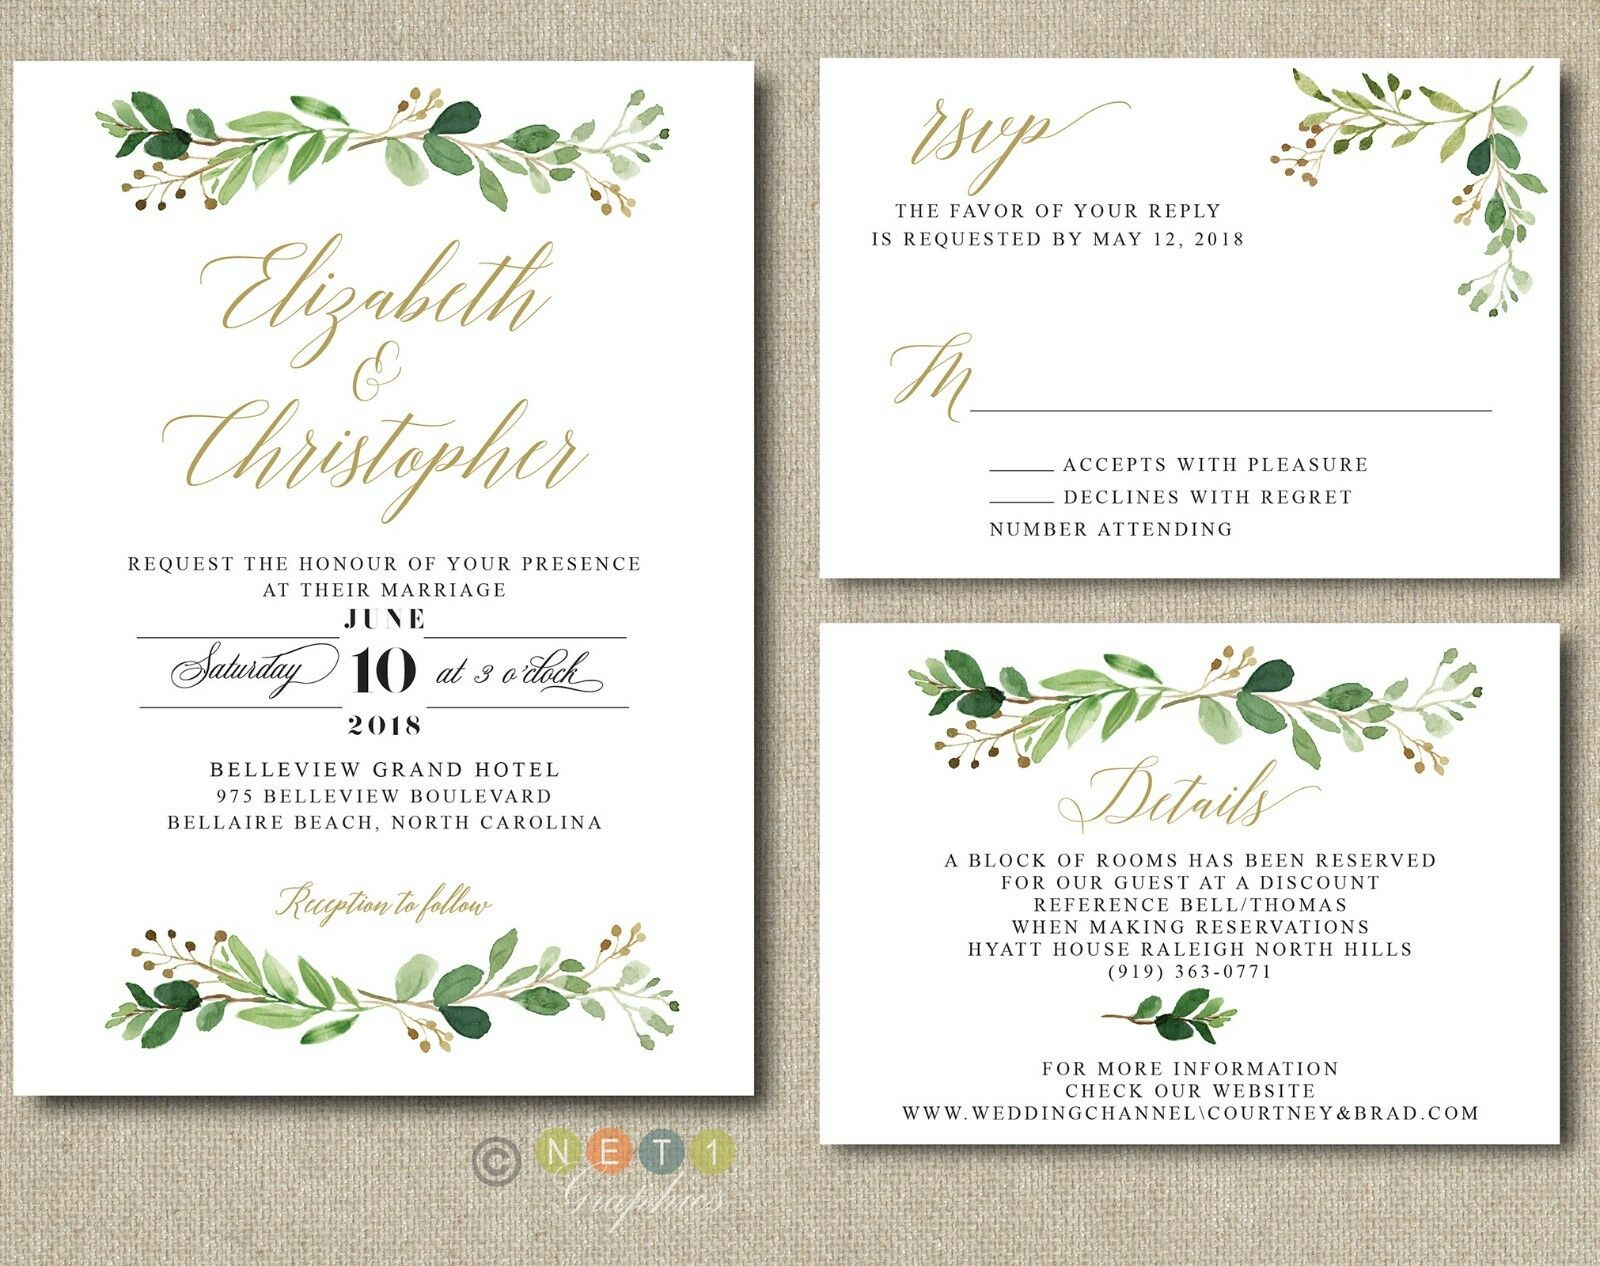 100 Personalized vertery Wedding Invitations Suite Modern Rustic with Envelopes